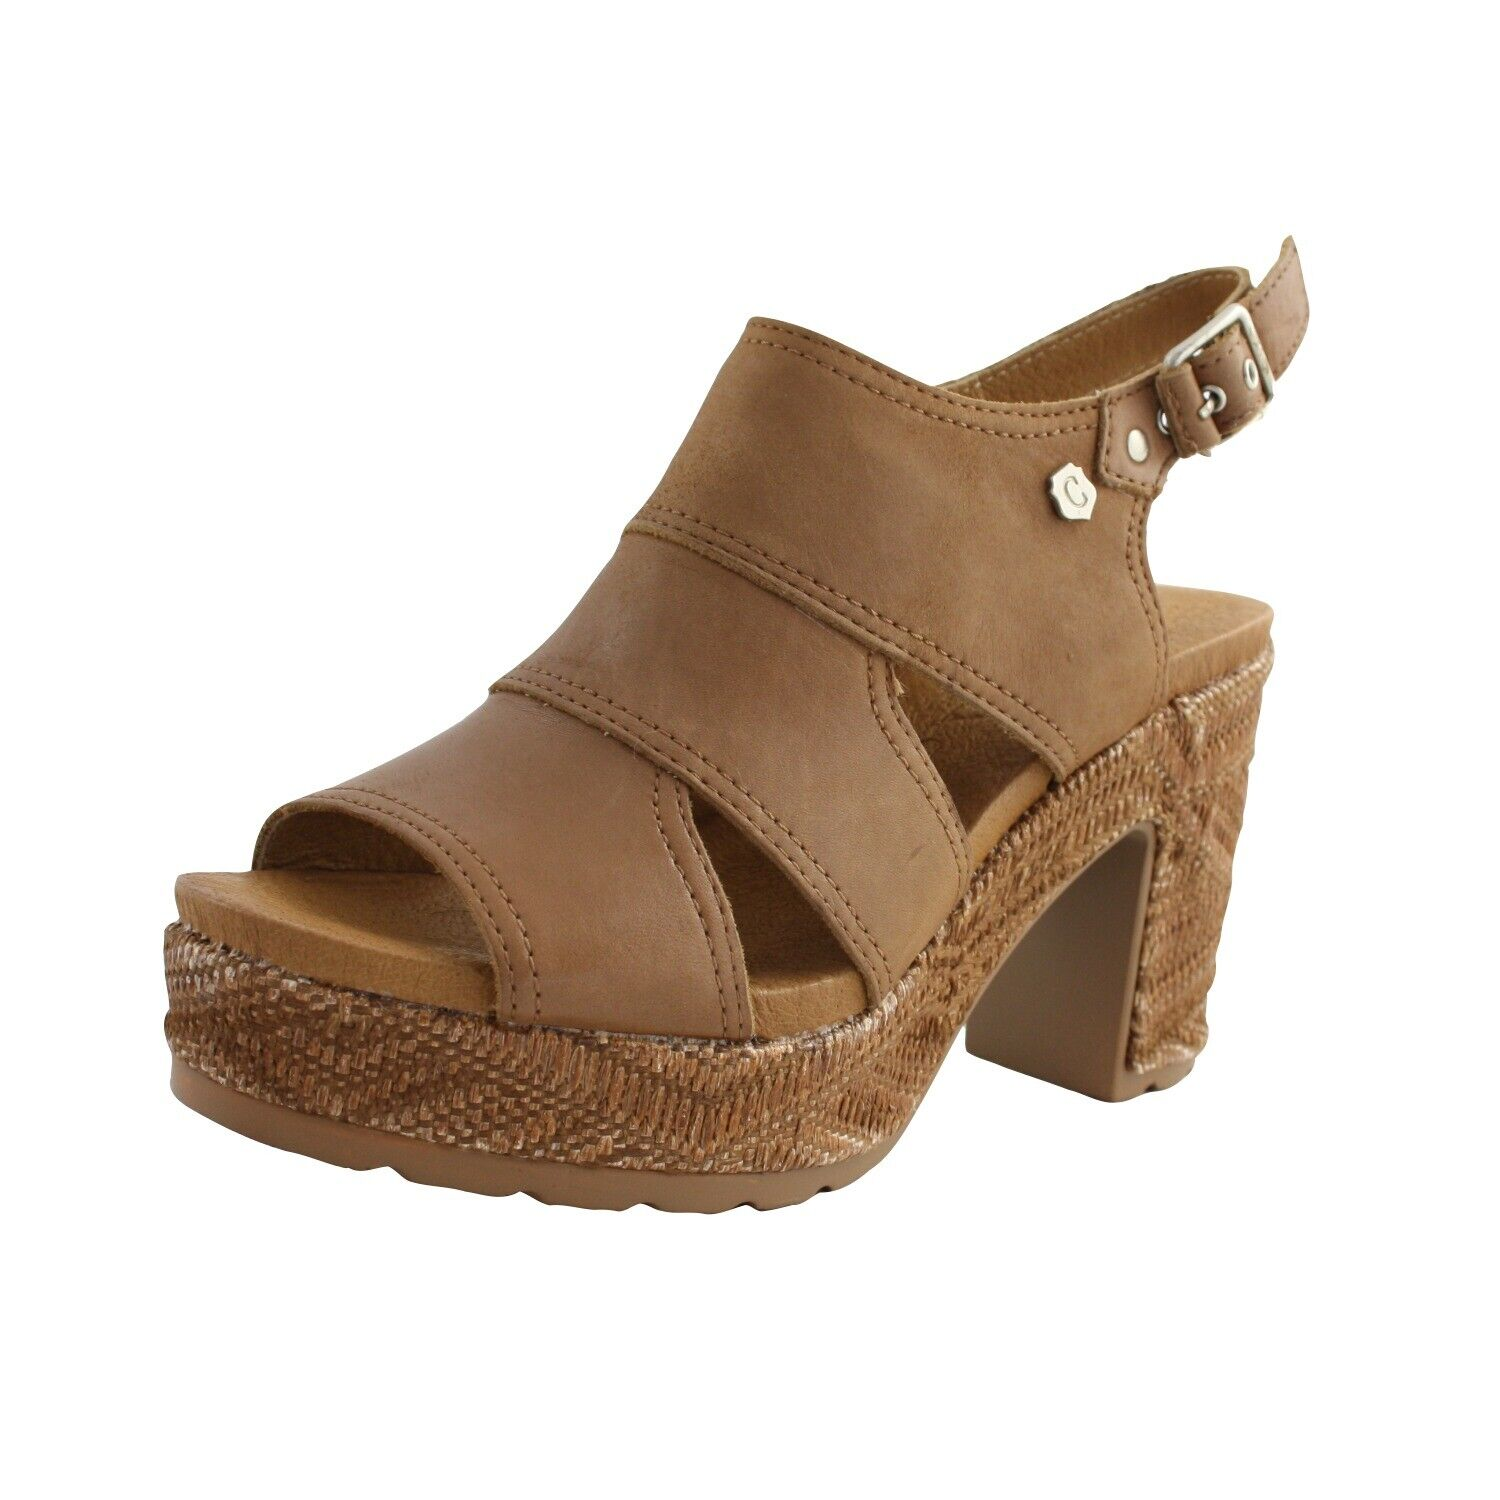 Shoes Sandals Summer Carmela Womens Brown Leather Leather Heel Comfortable